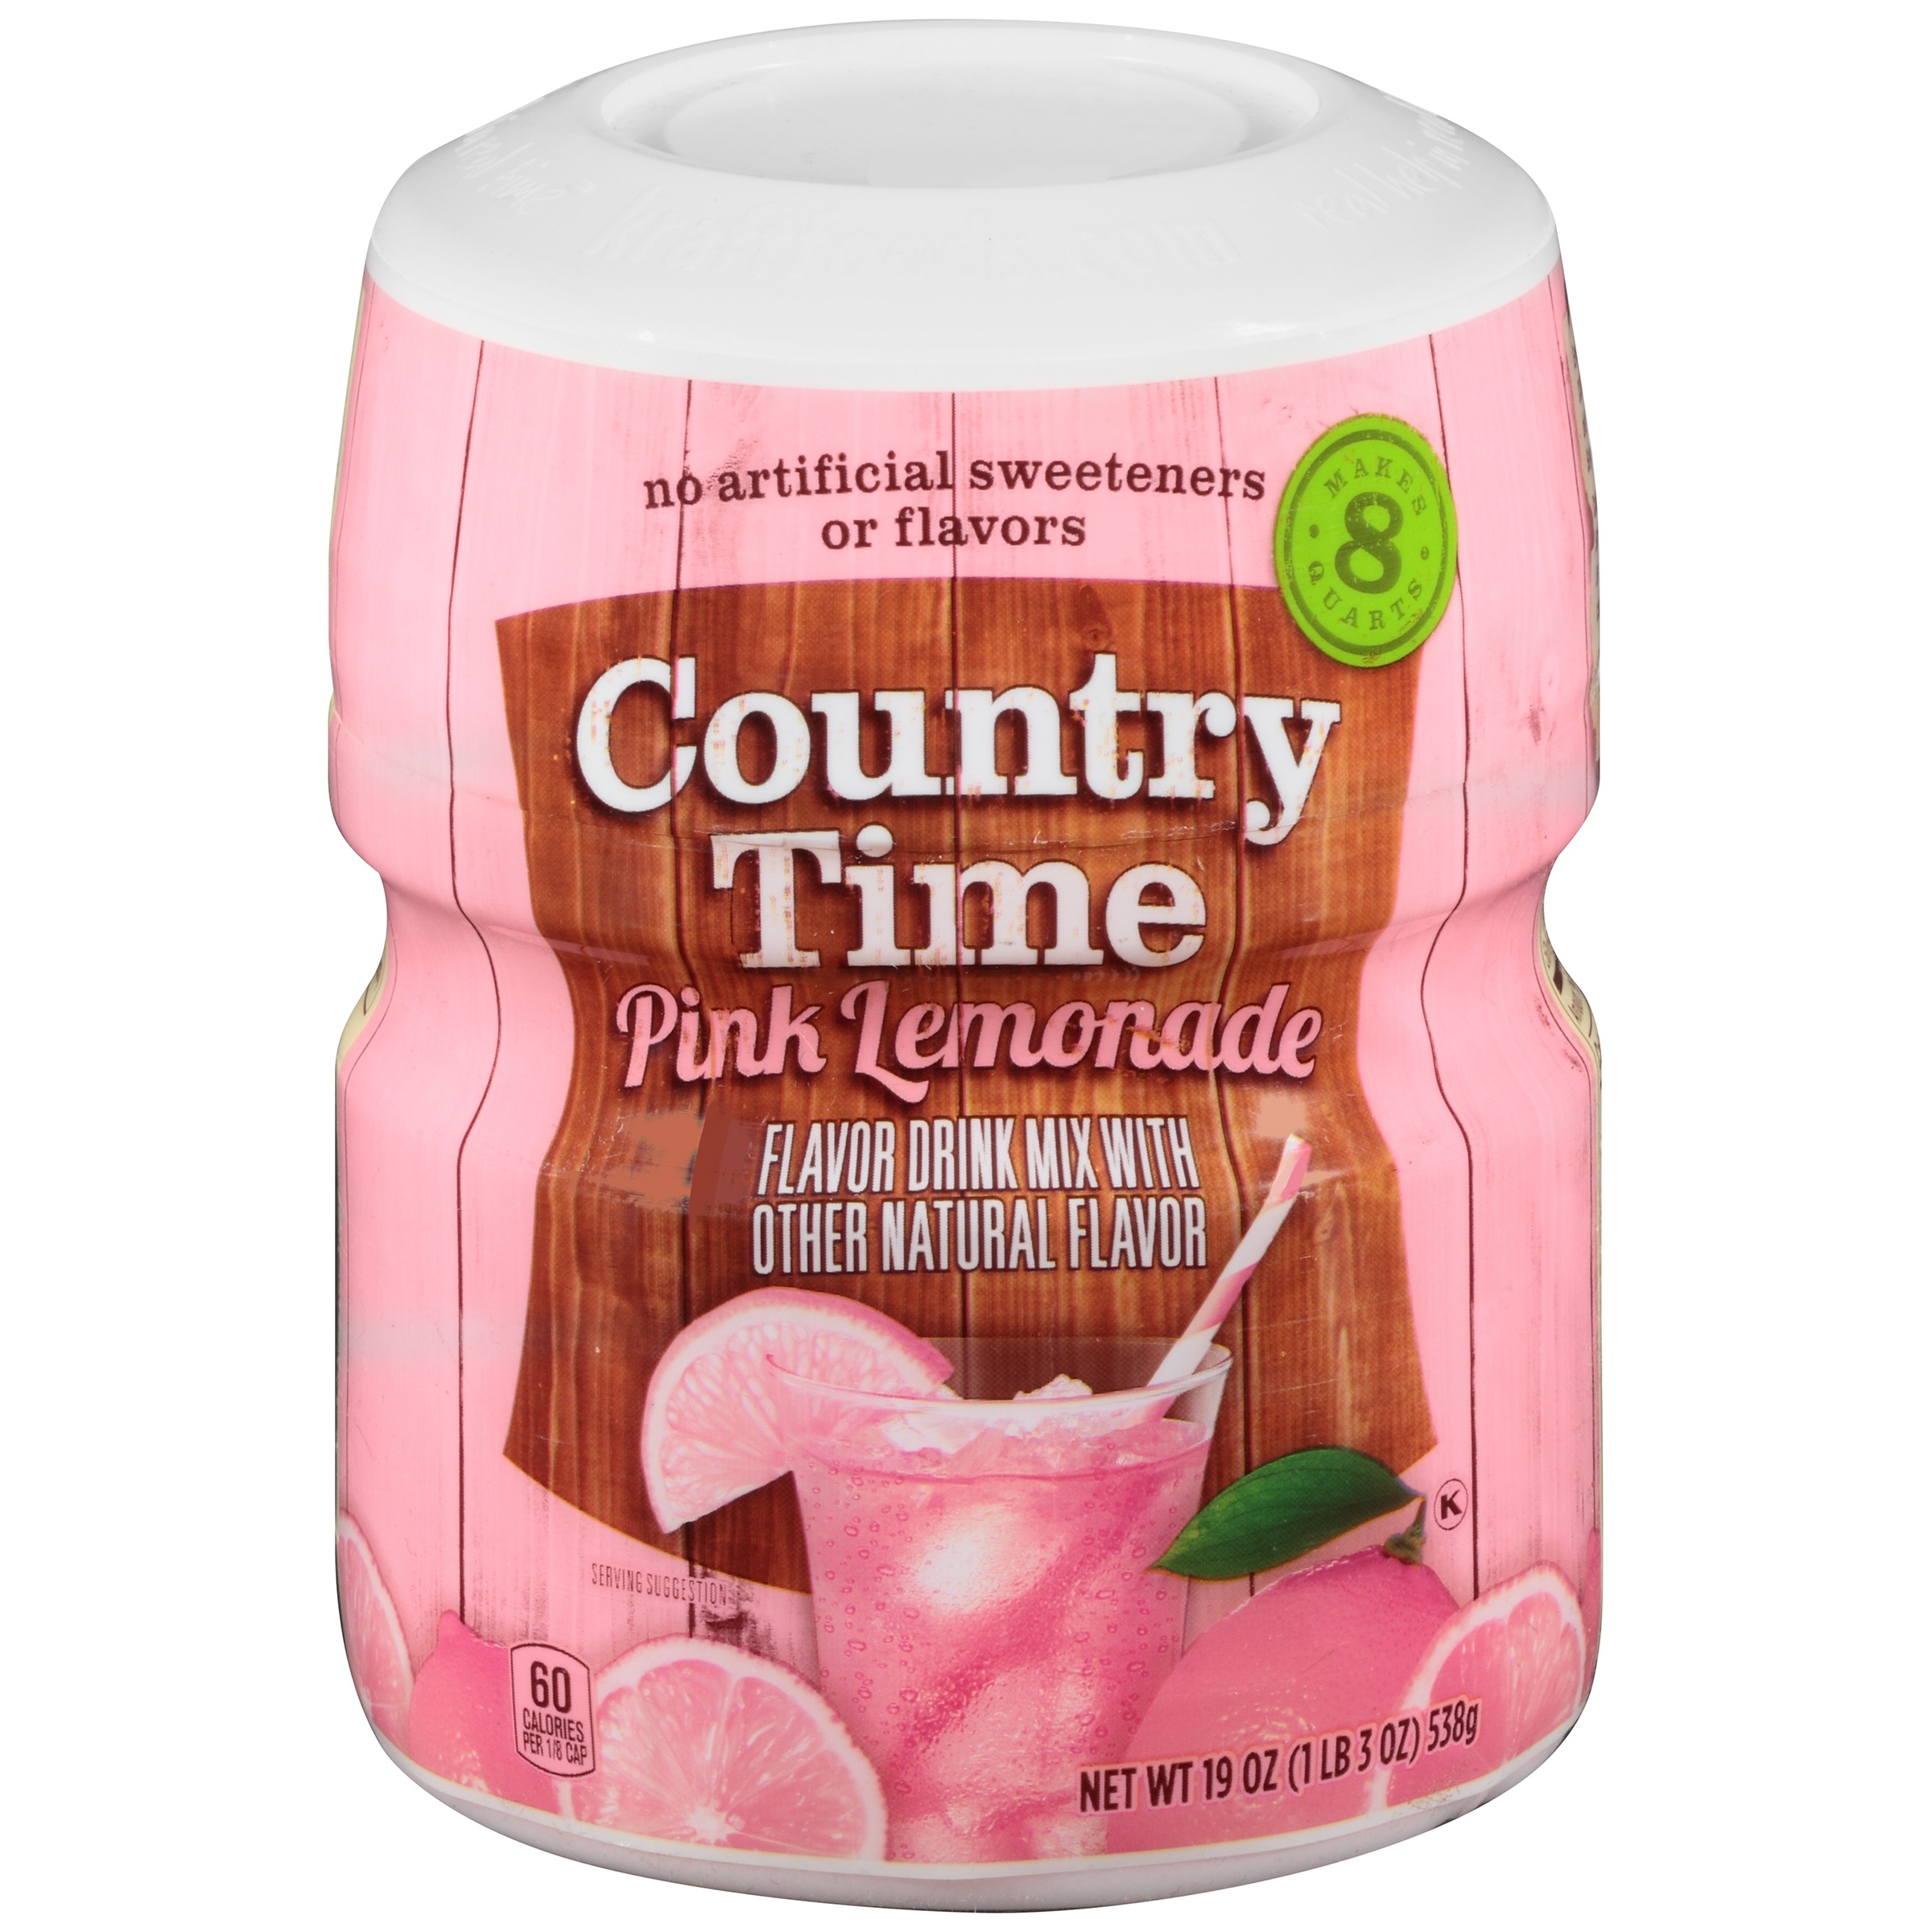 Country Time Pink Lemonade Drink Mix 19 oz. Jar